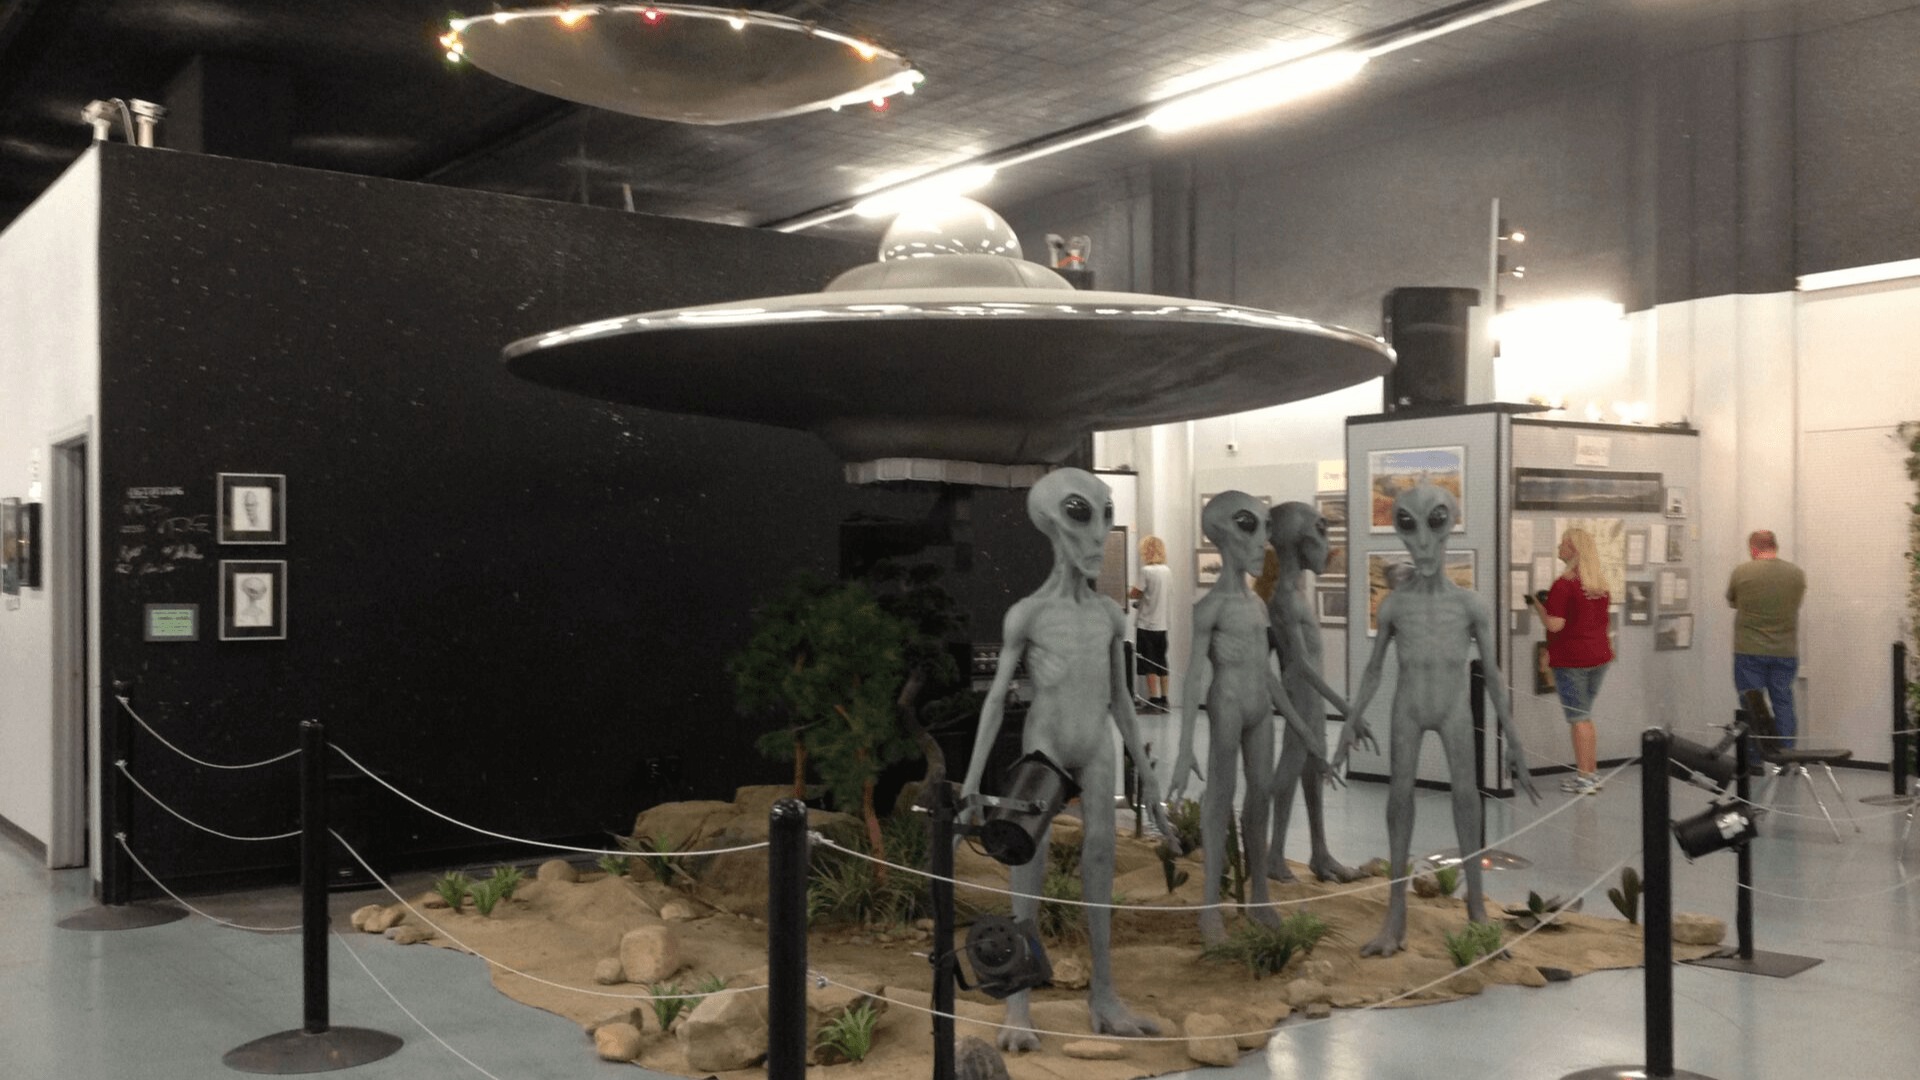 UFO and Alien exhibit